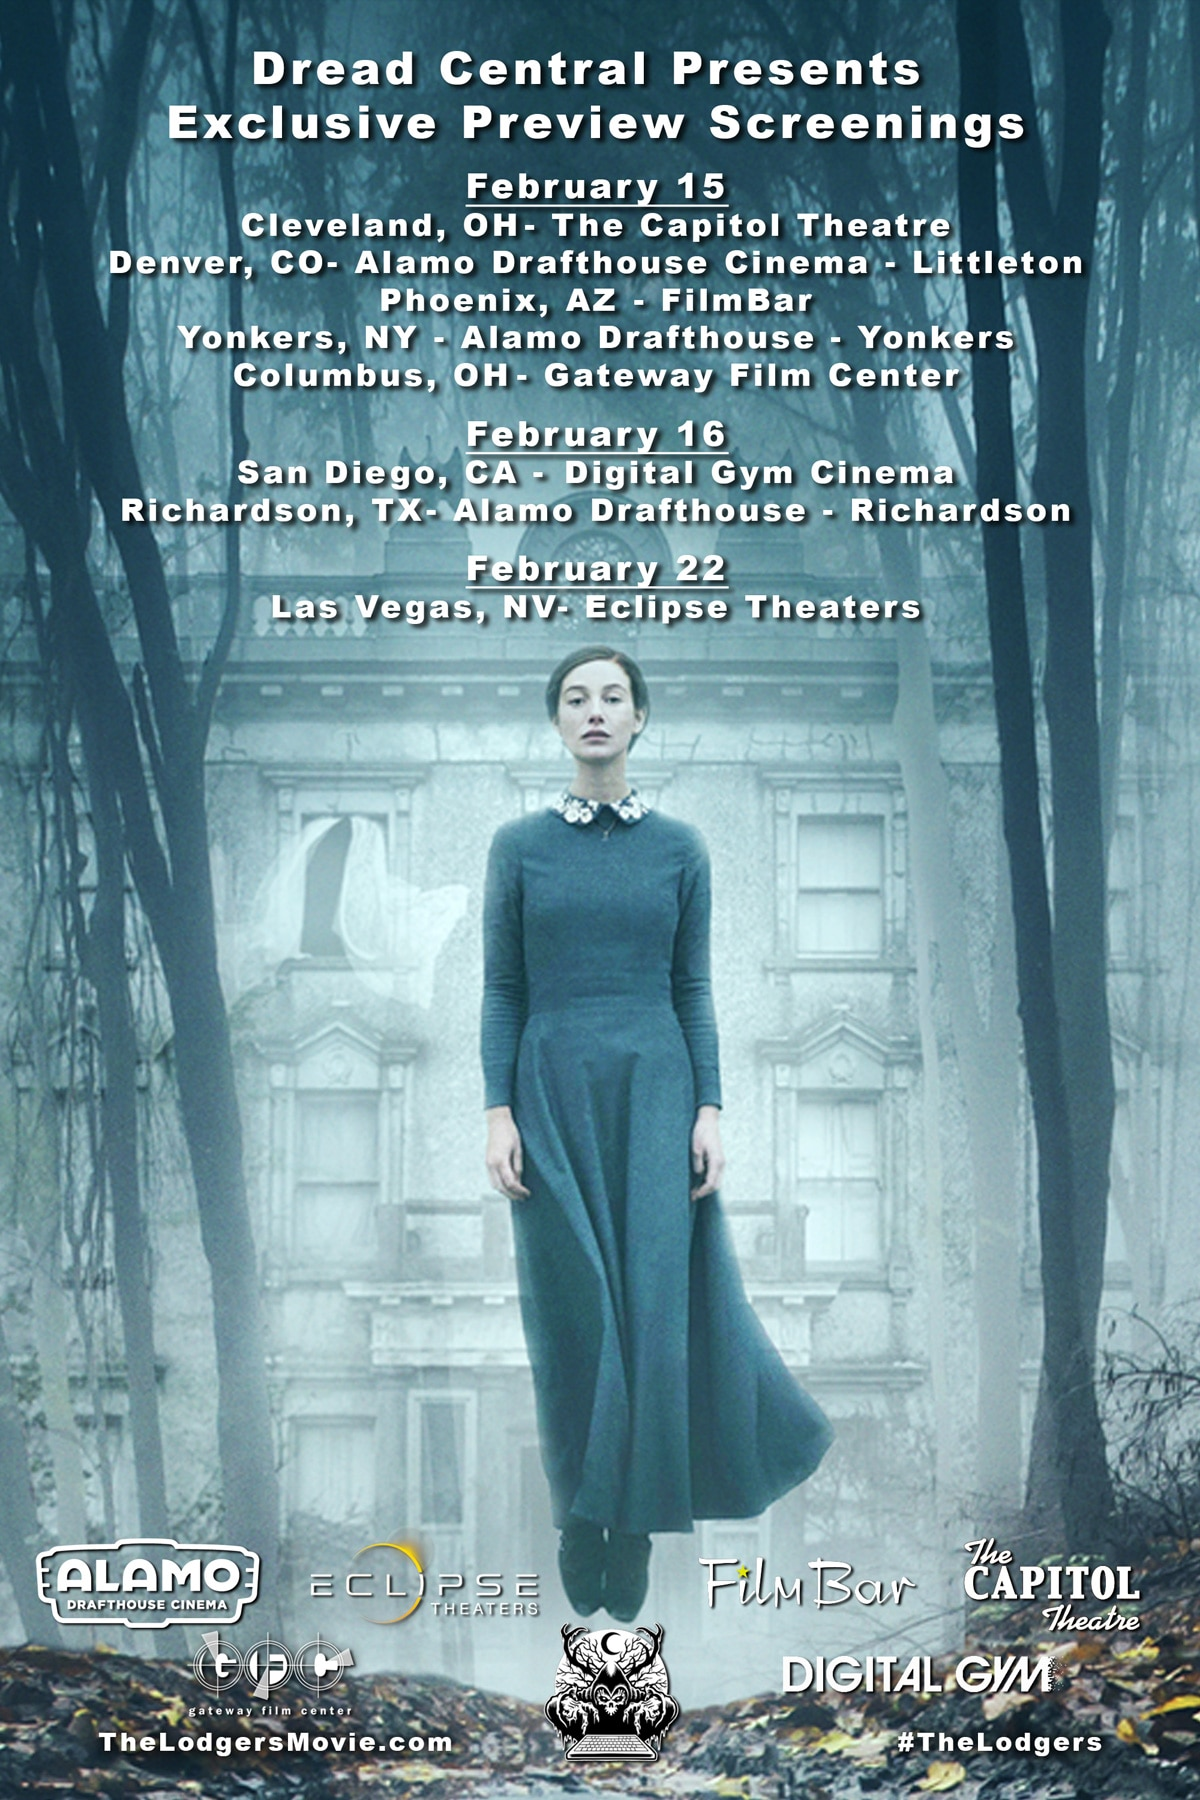 TheLodgers PreviewScreenings Flyer fixed - Dread Central Presents The Lodgers THIS WEEK! Click for Cities and Showtimes!